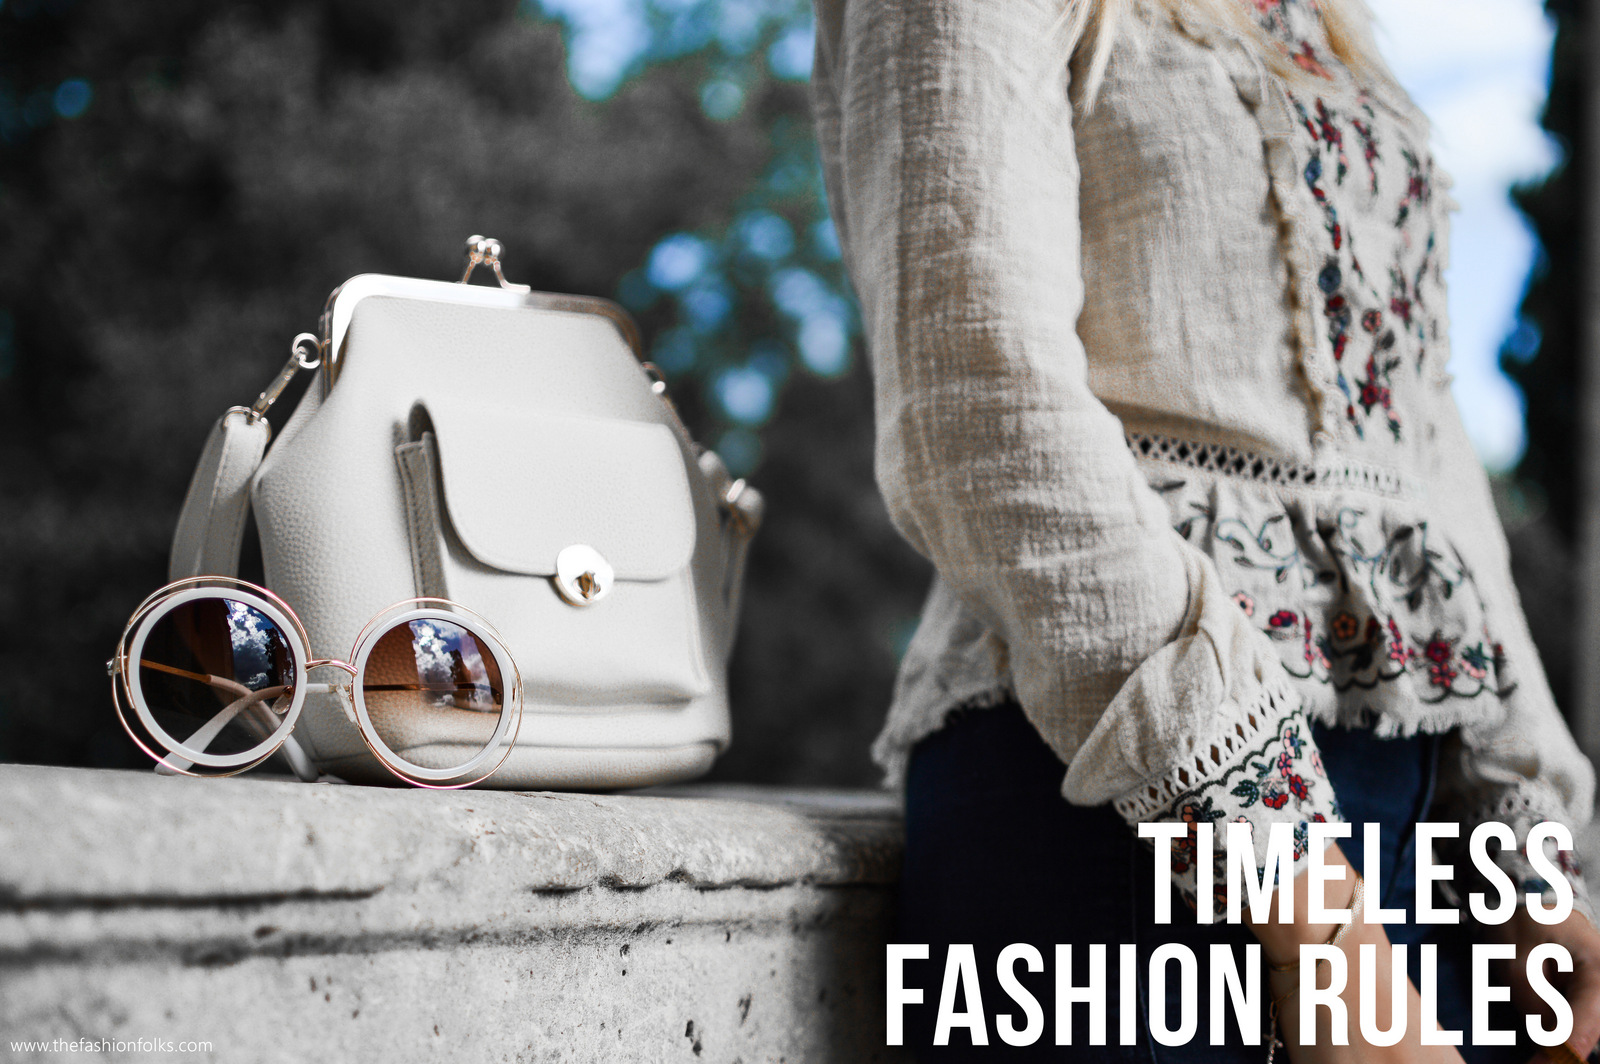 Timeless Fashion Rules We All Should Live By